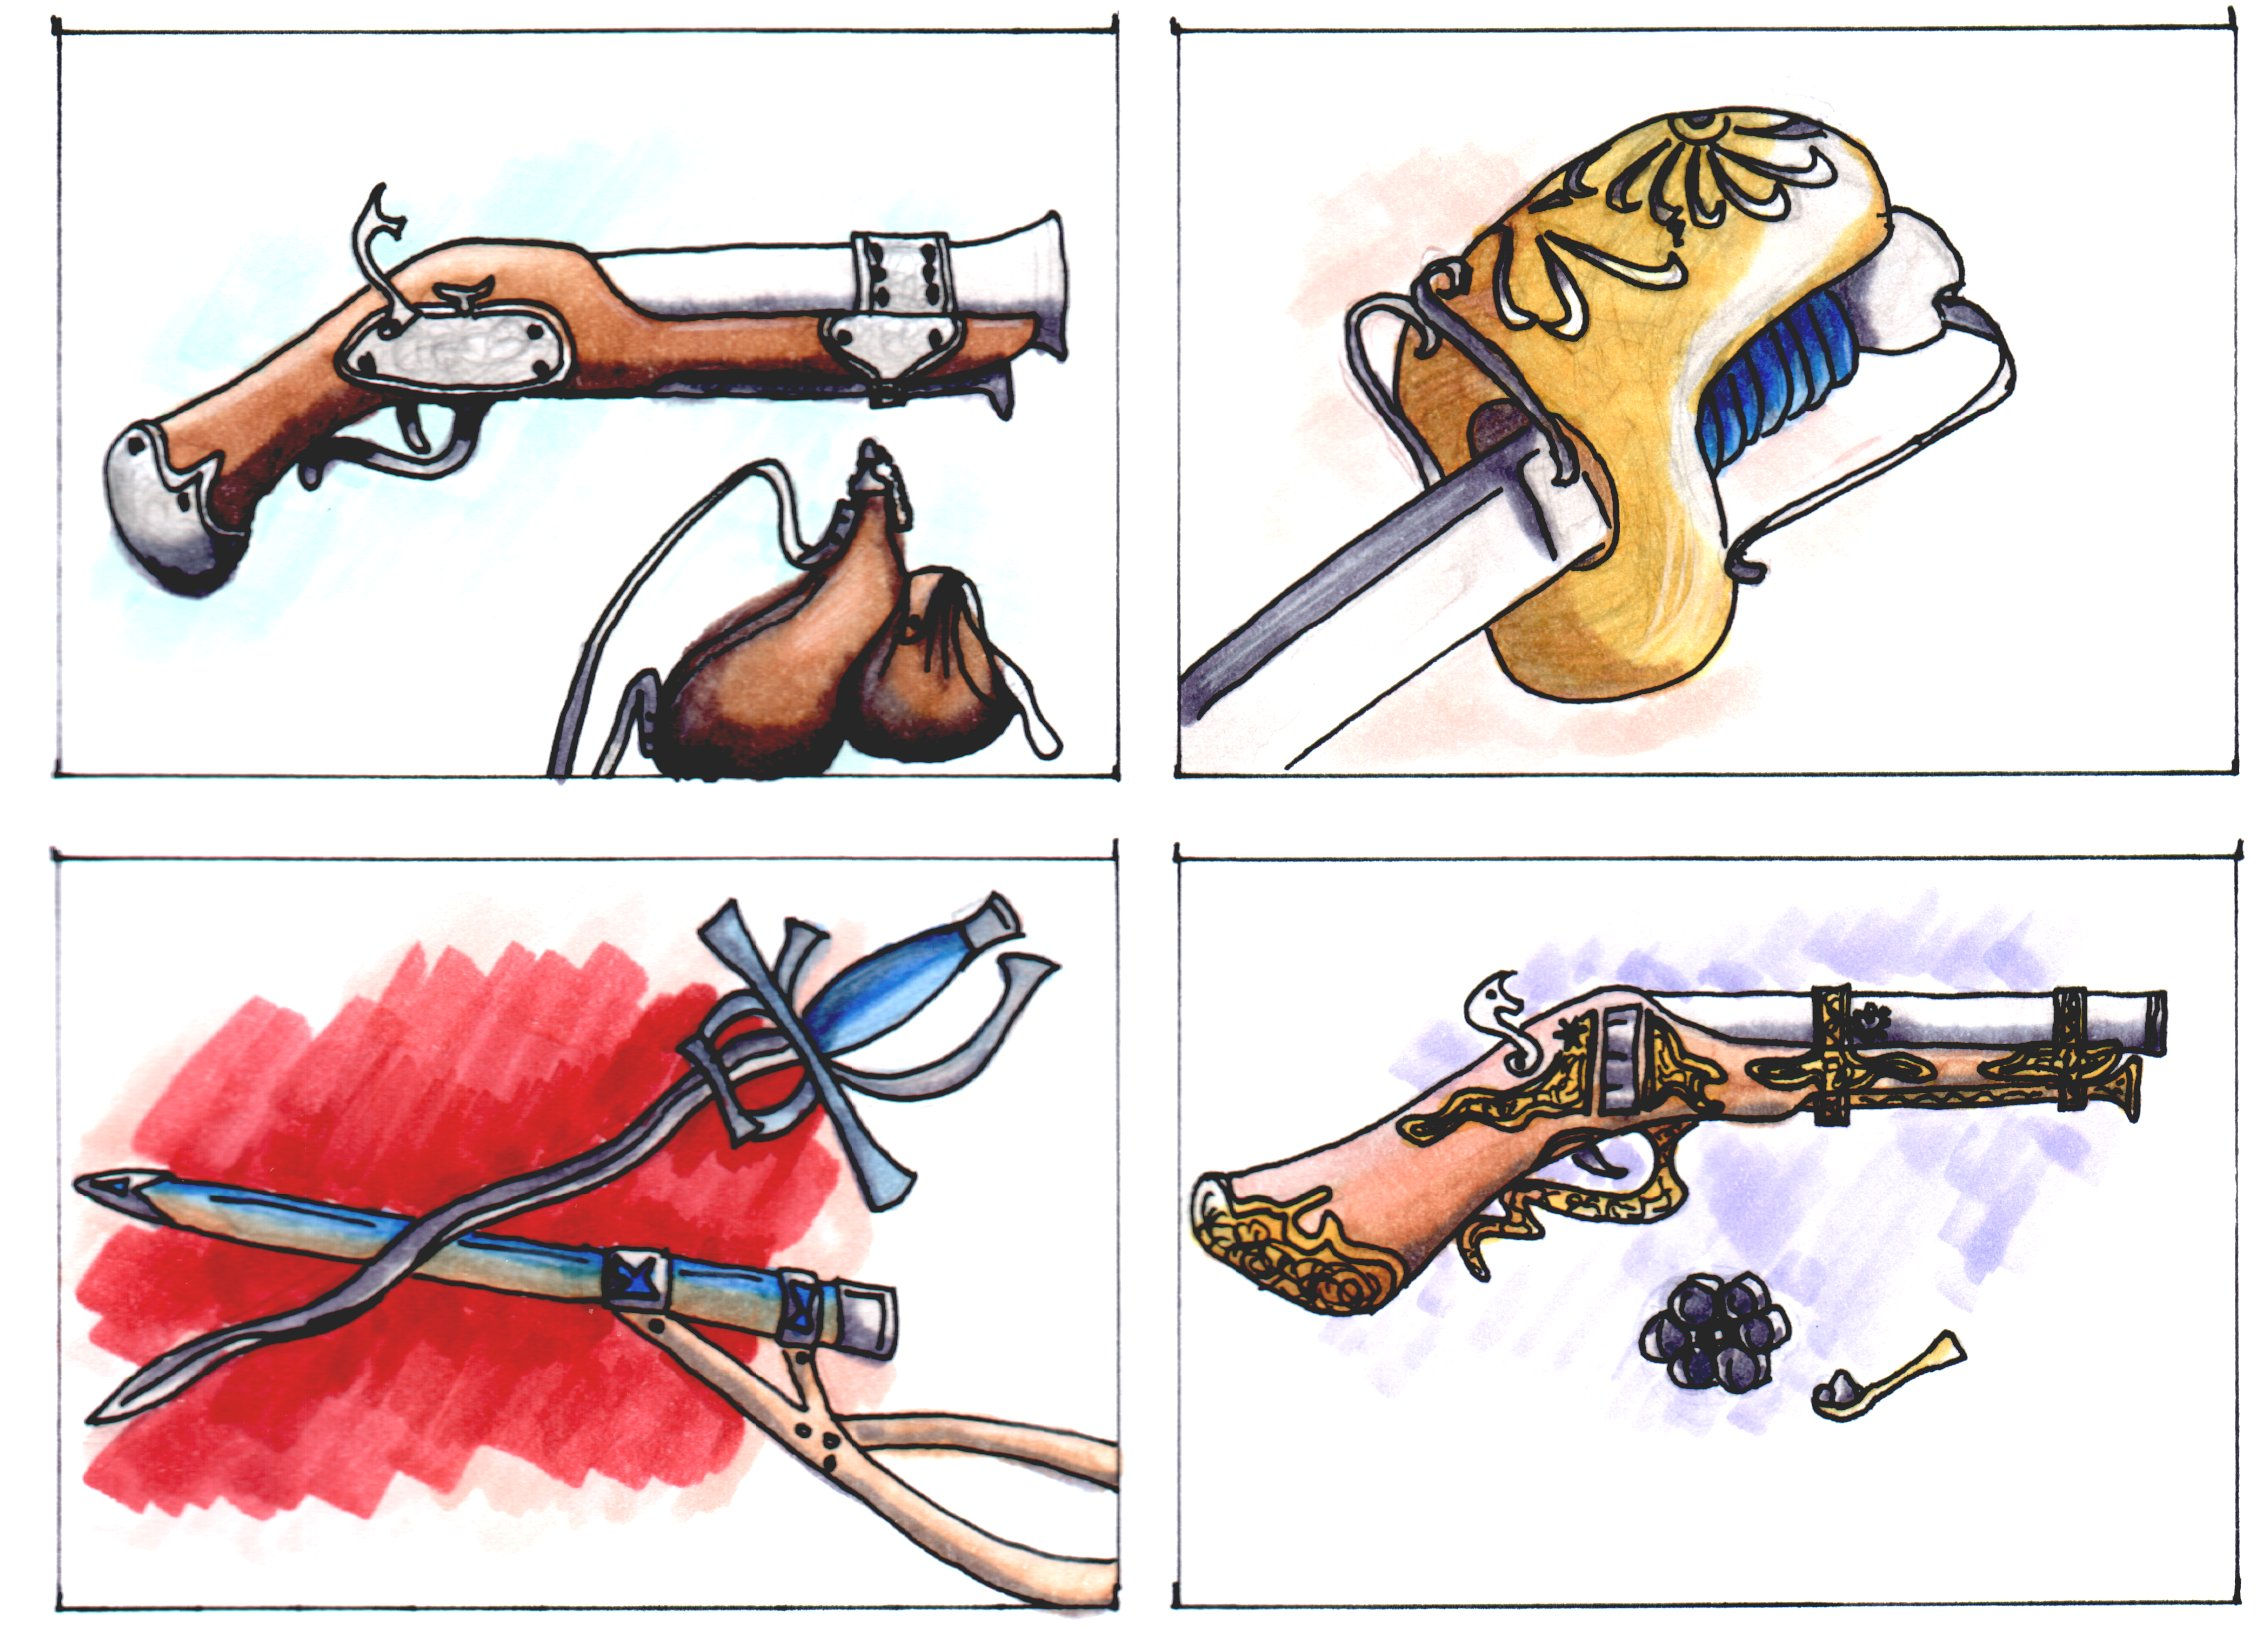 Some various ideas for 'Swords and Pistols', in Trading Card Style. Pencil, Ink and Copics marker.